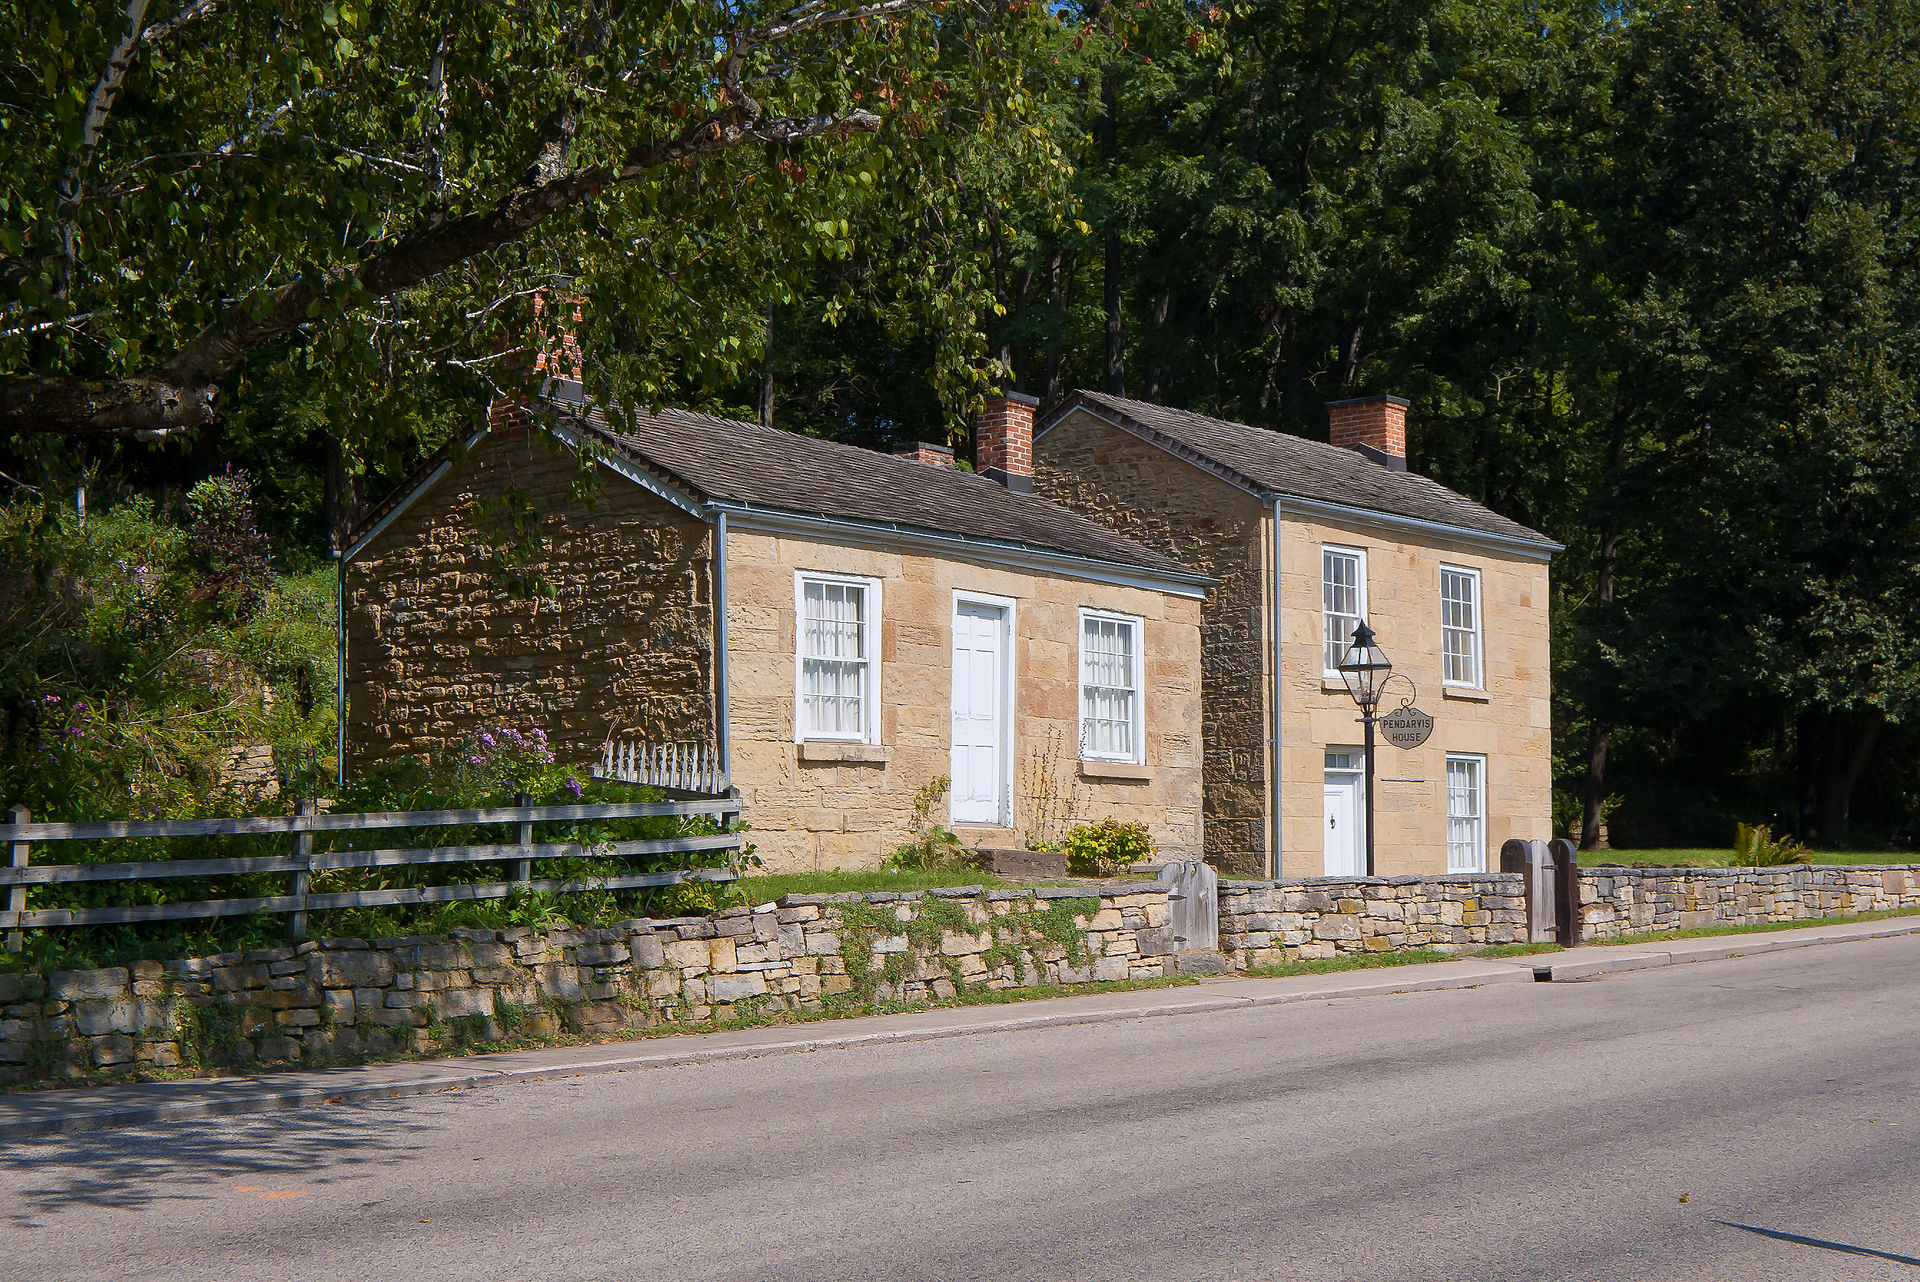 Built ca. 1835, the Pendarvis House is on the left. The one on the right is called the Trewlany House.